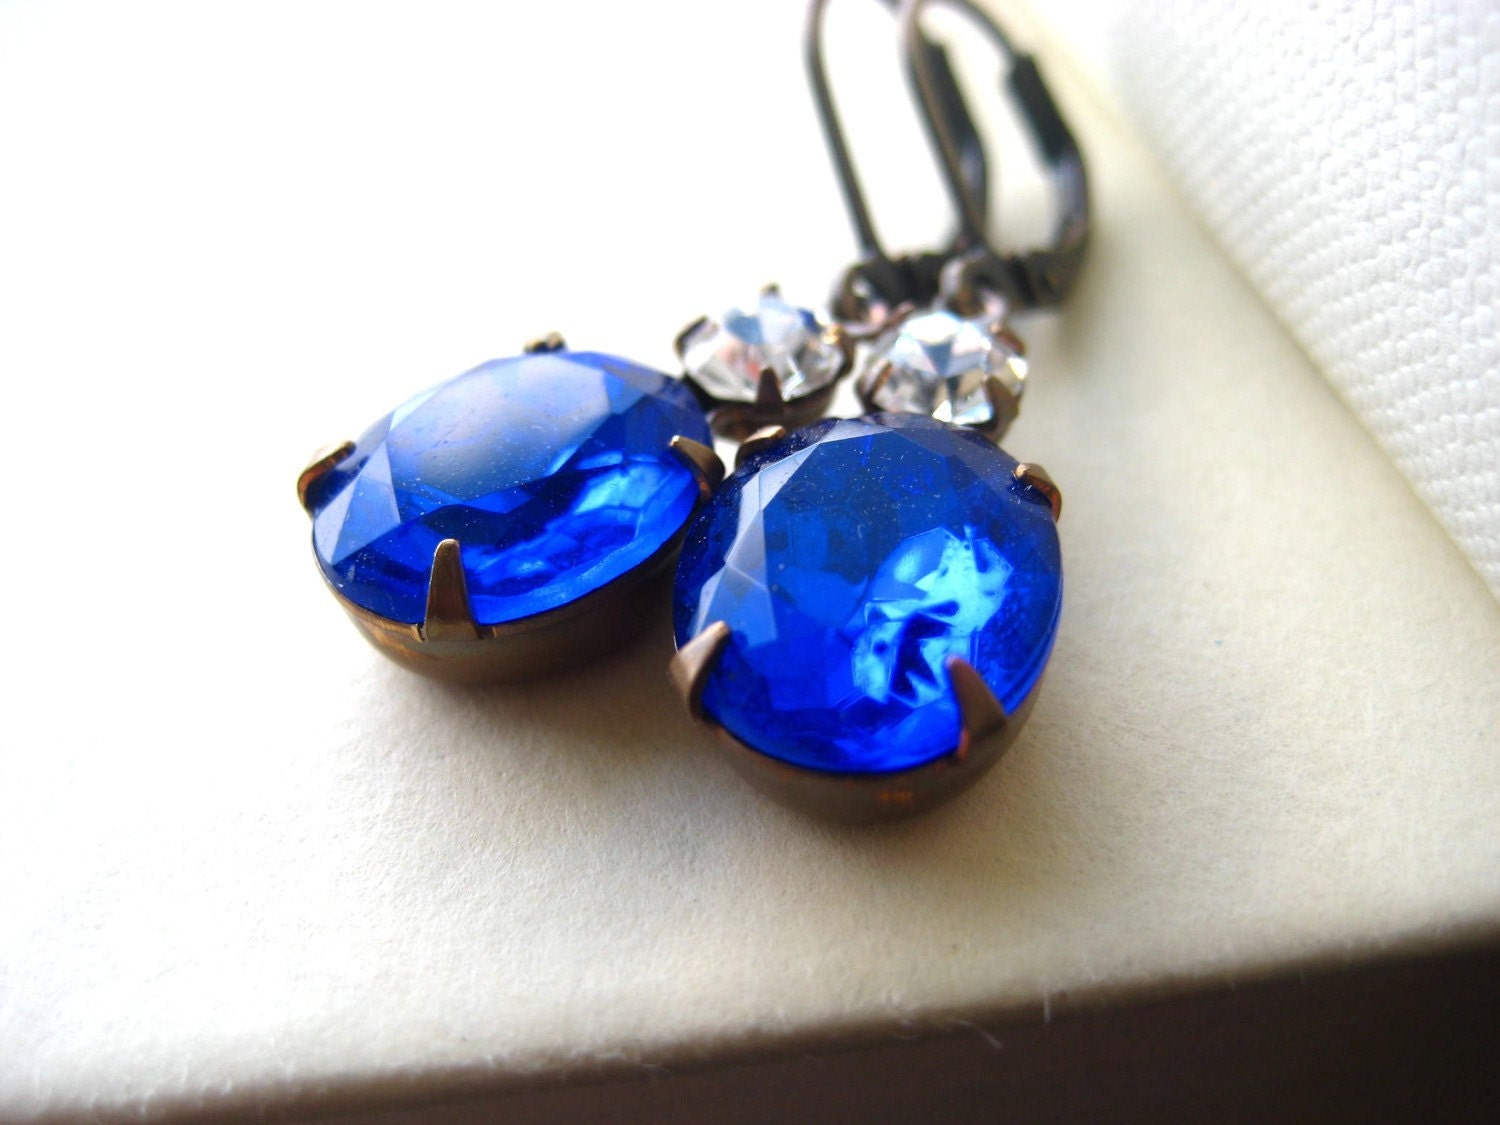 Estate Style Blue Rhinestone Earrings - cobalt, vintage inspired, wedding, bridesmaid gift, antique brass, oval, tagt team